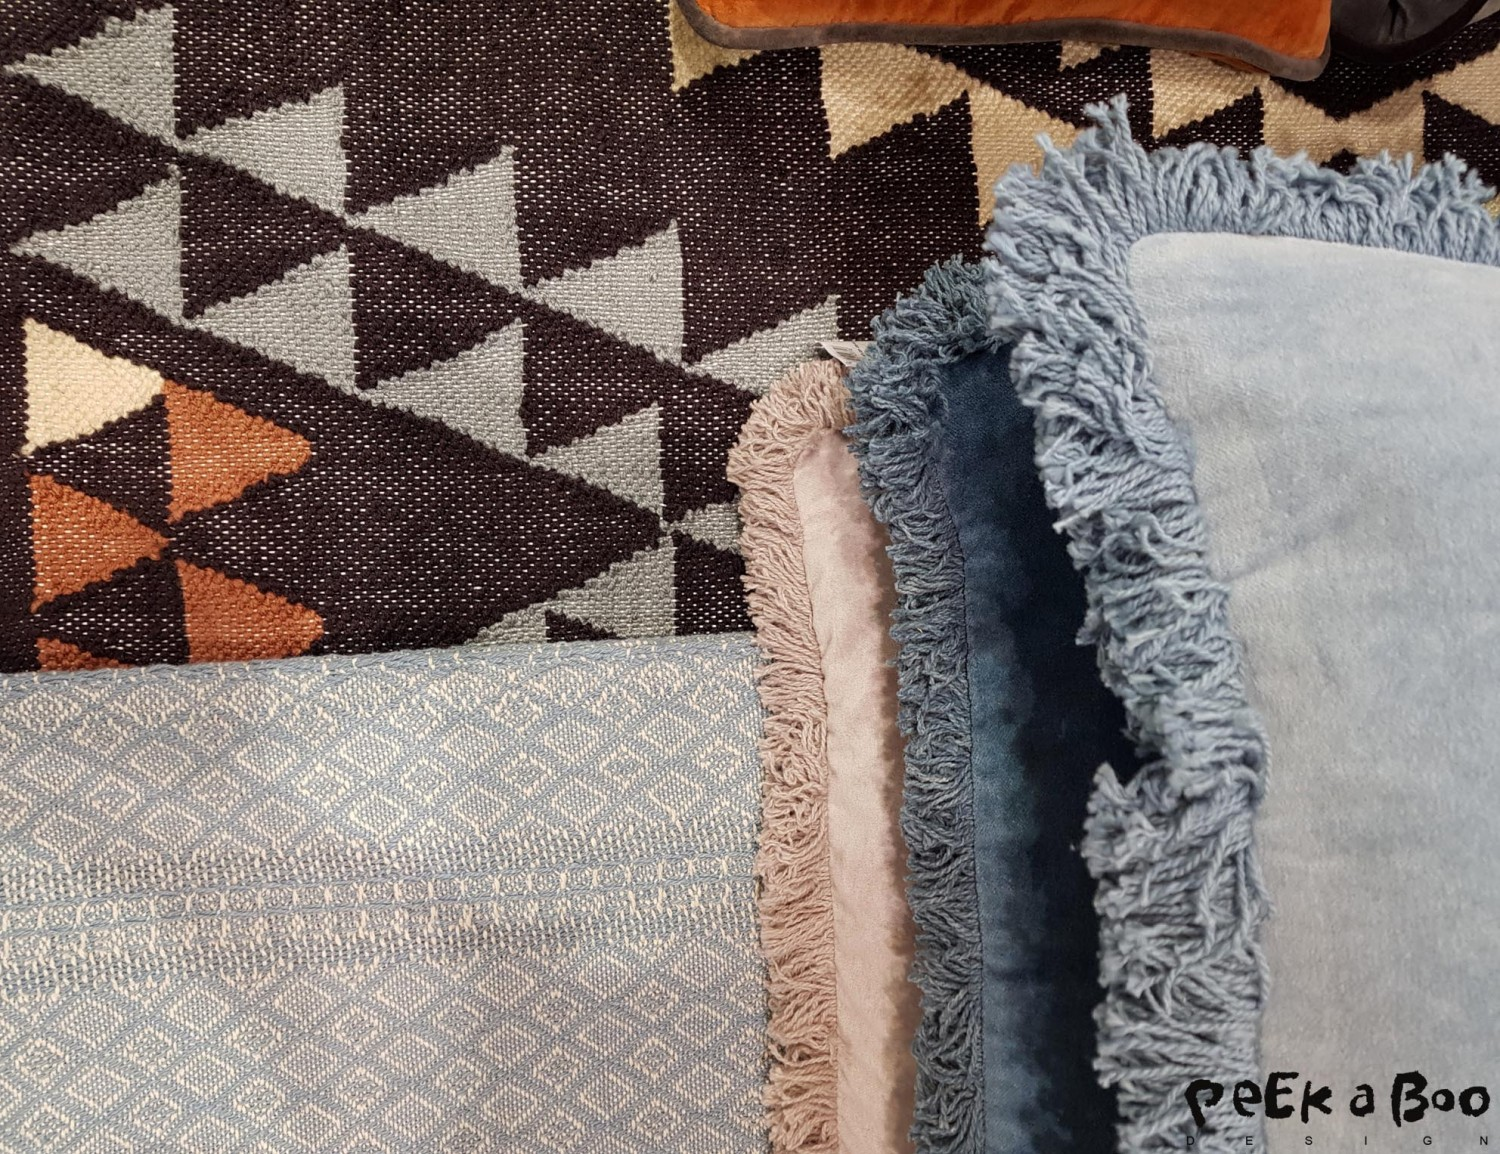 Woven textiles made by craftsmen of recycled plastic bottles. from liv-interior.